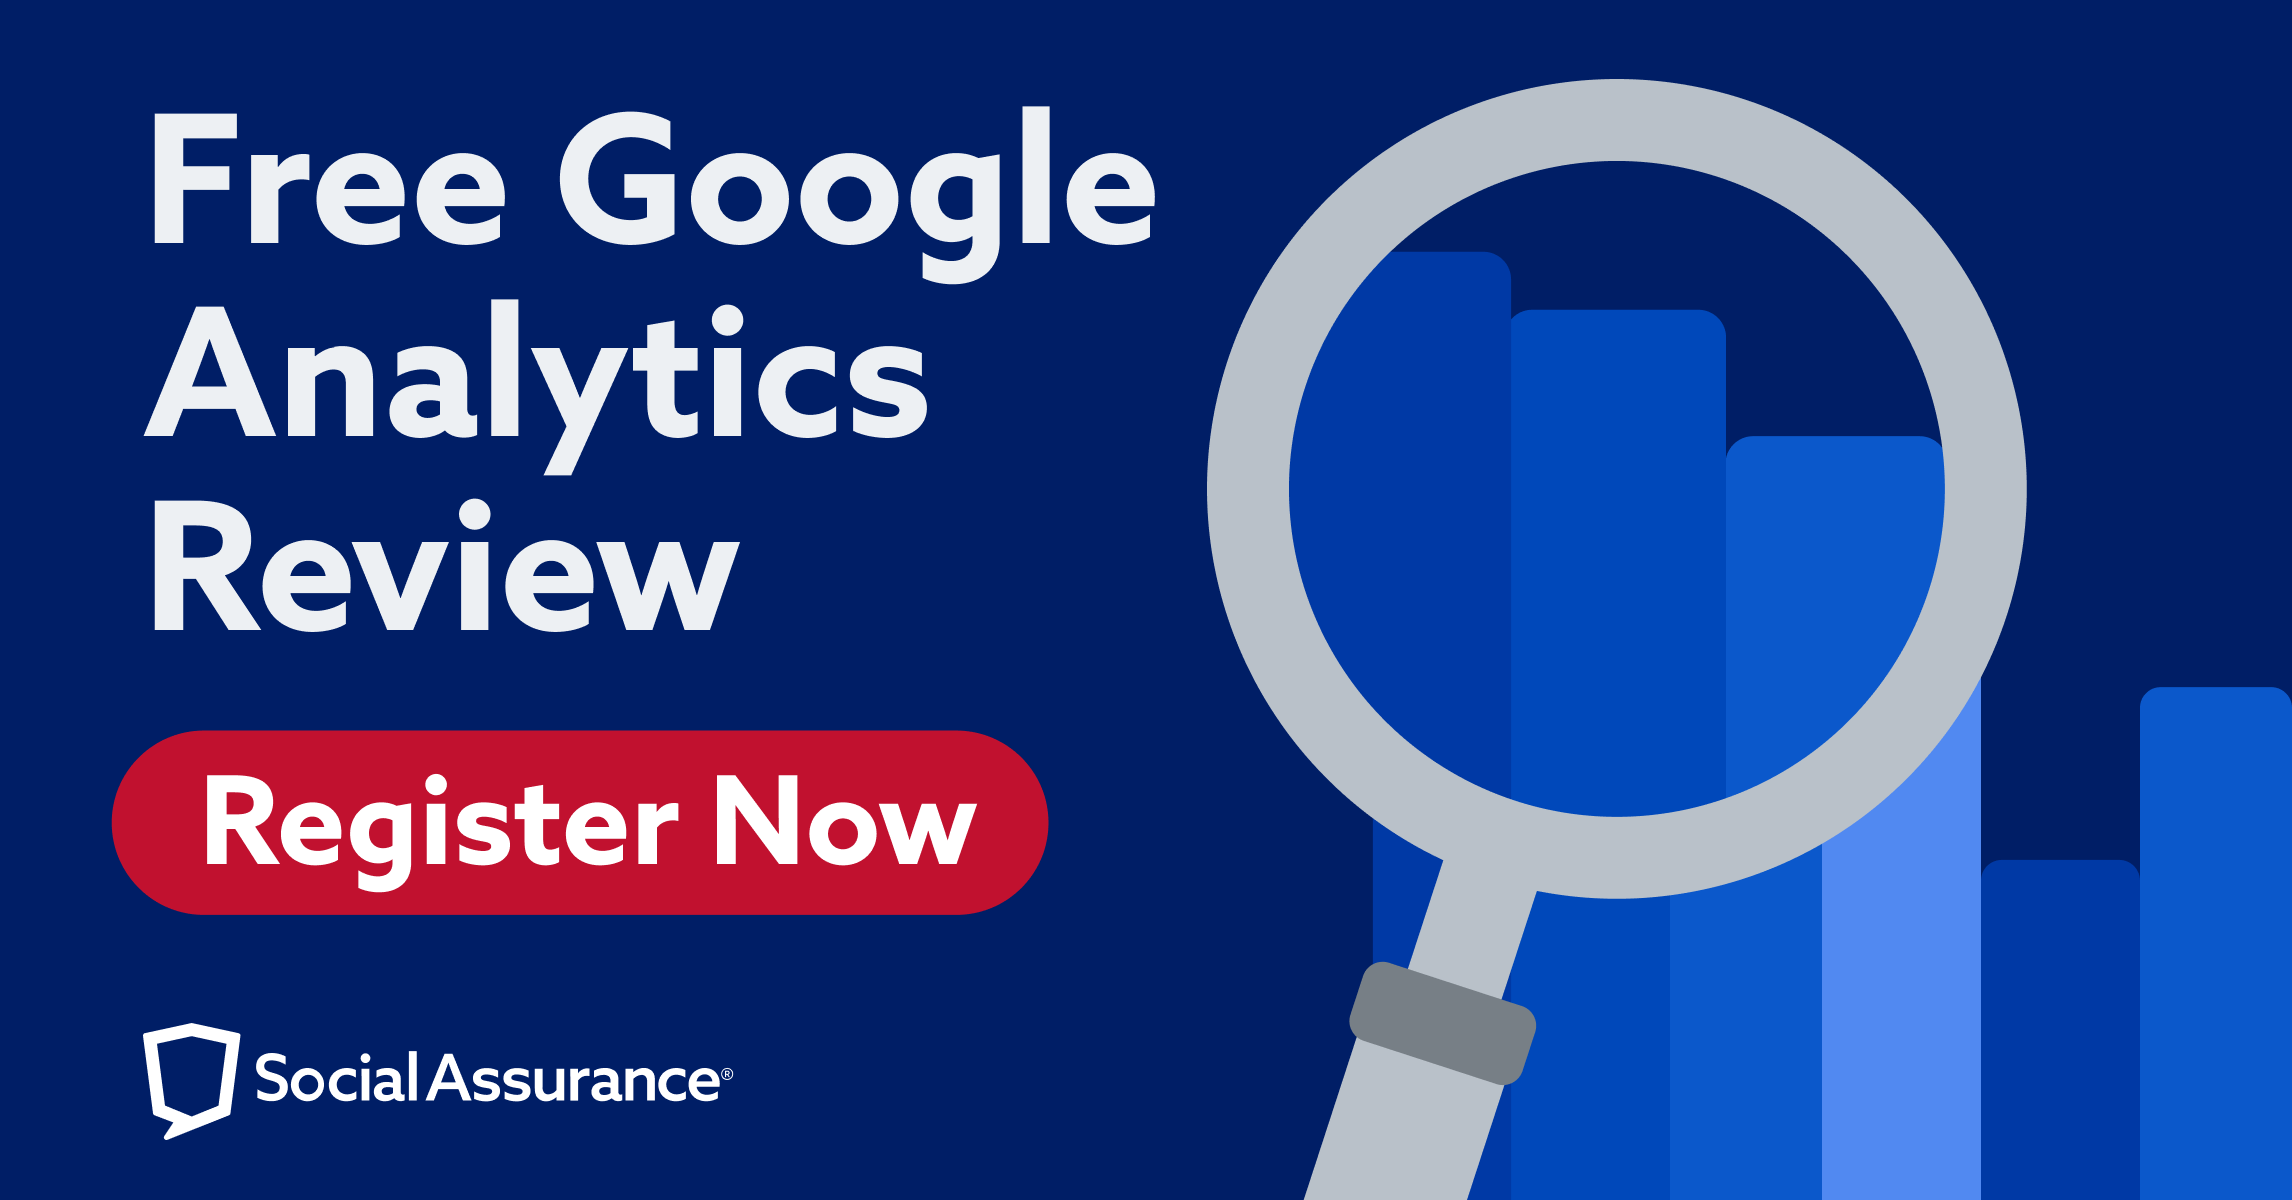 Register for a free Google Analytics Review